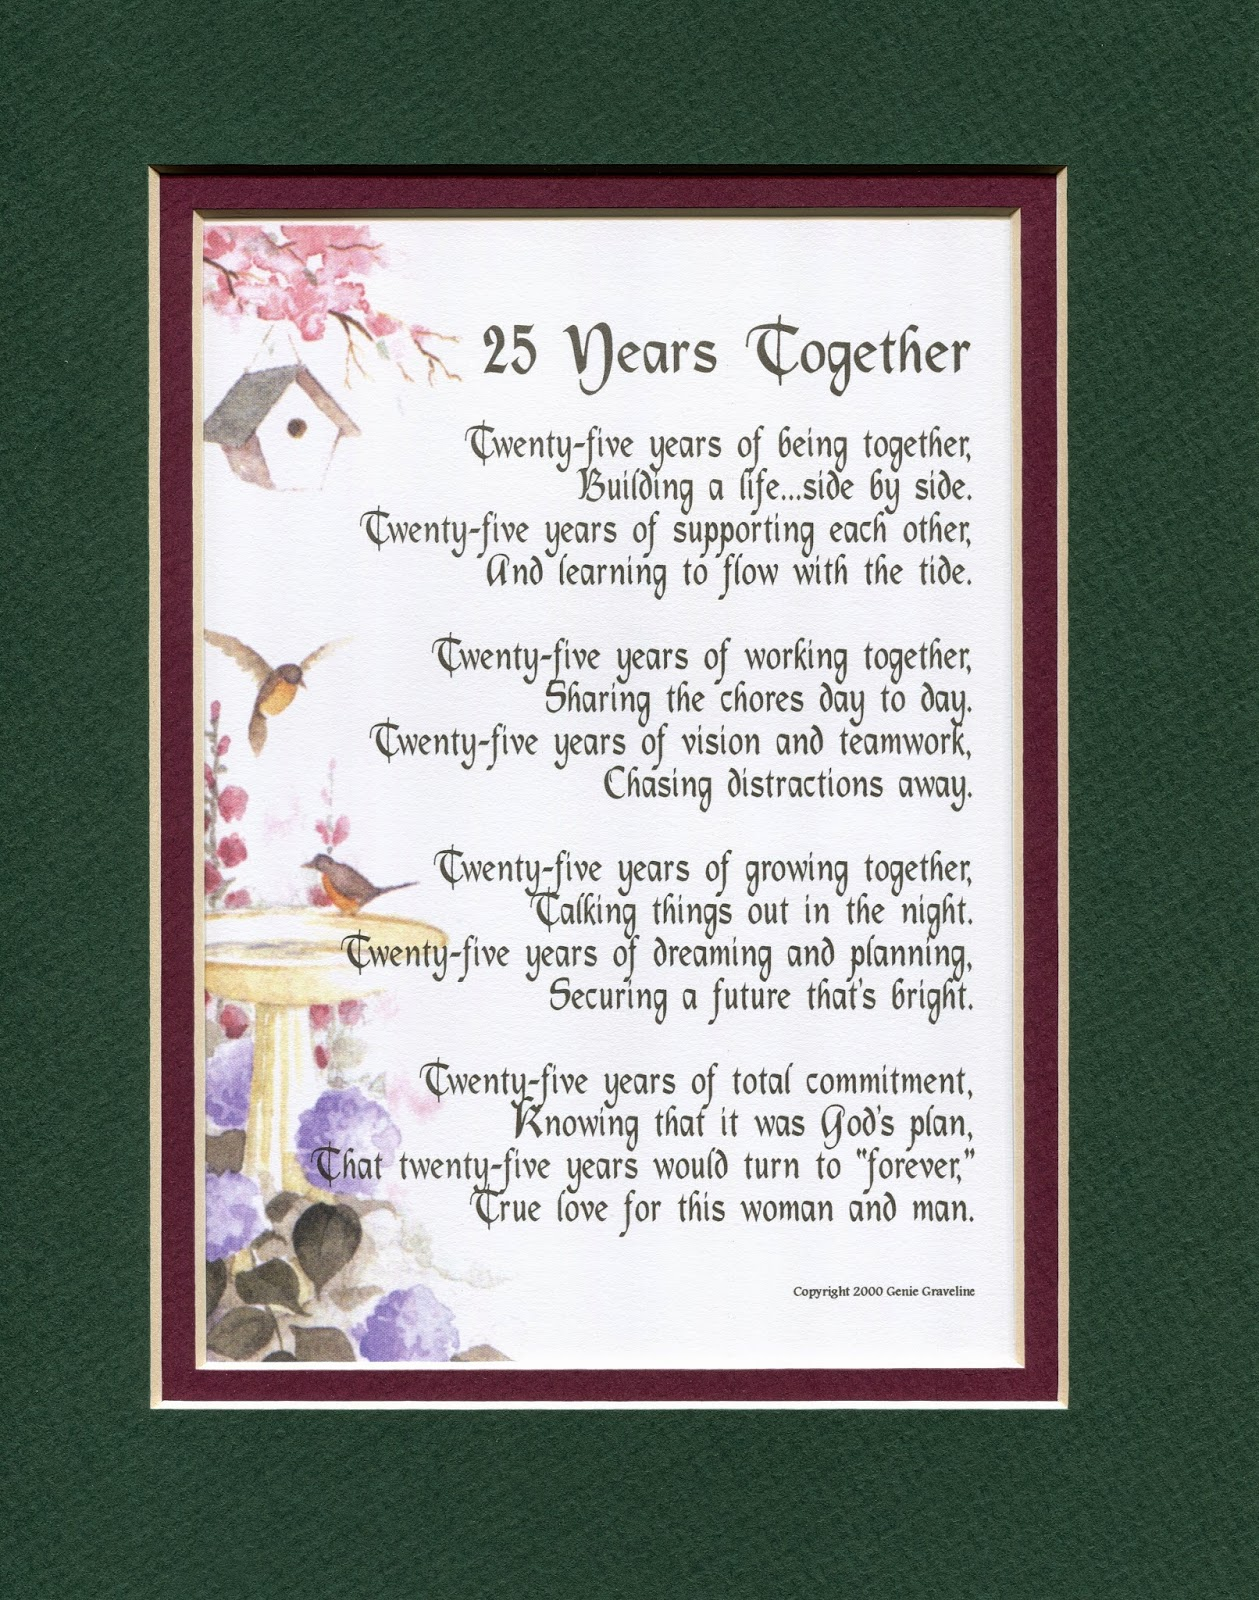 Genie39s poems march 2015 for 25th wedding anniversary poems